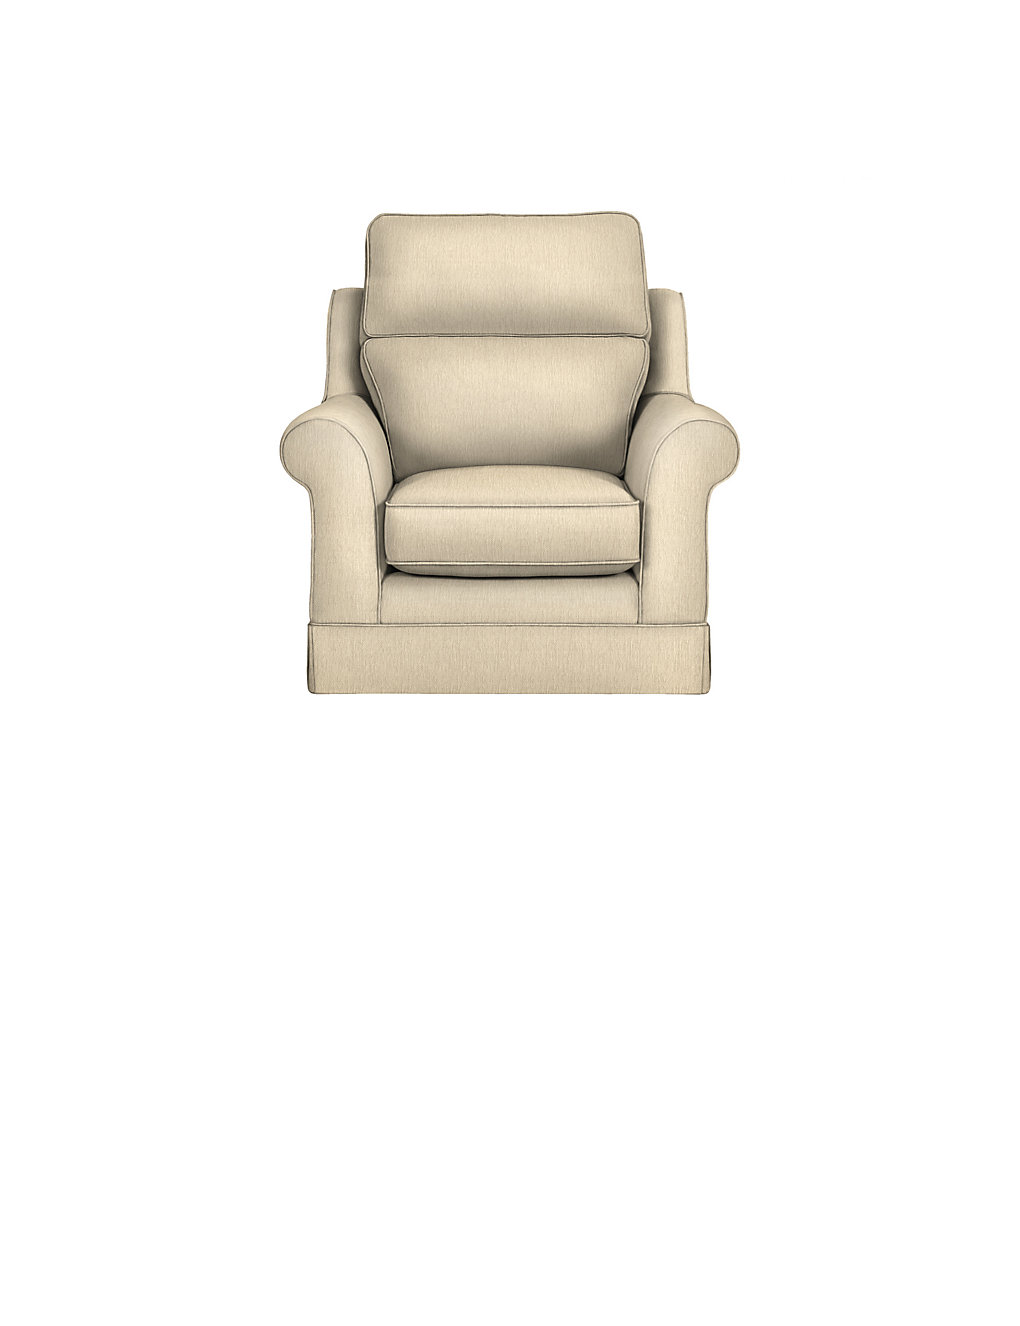 Colour by numbers richmond - The Richmond High Back Armchair